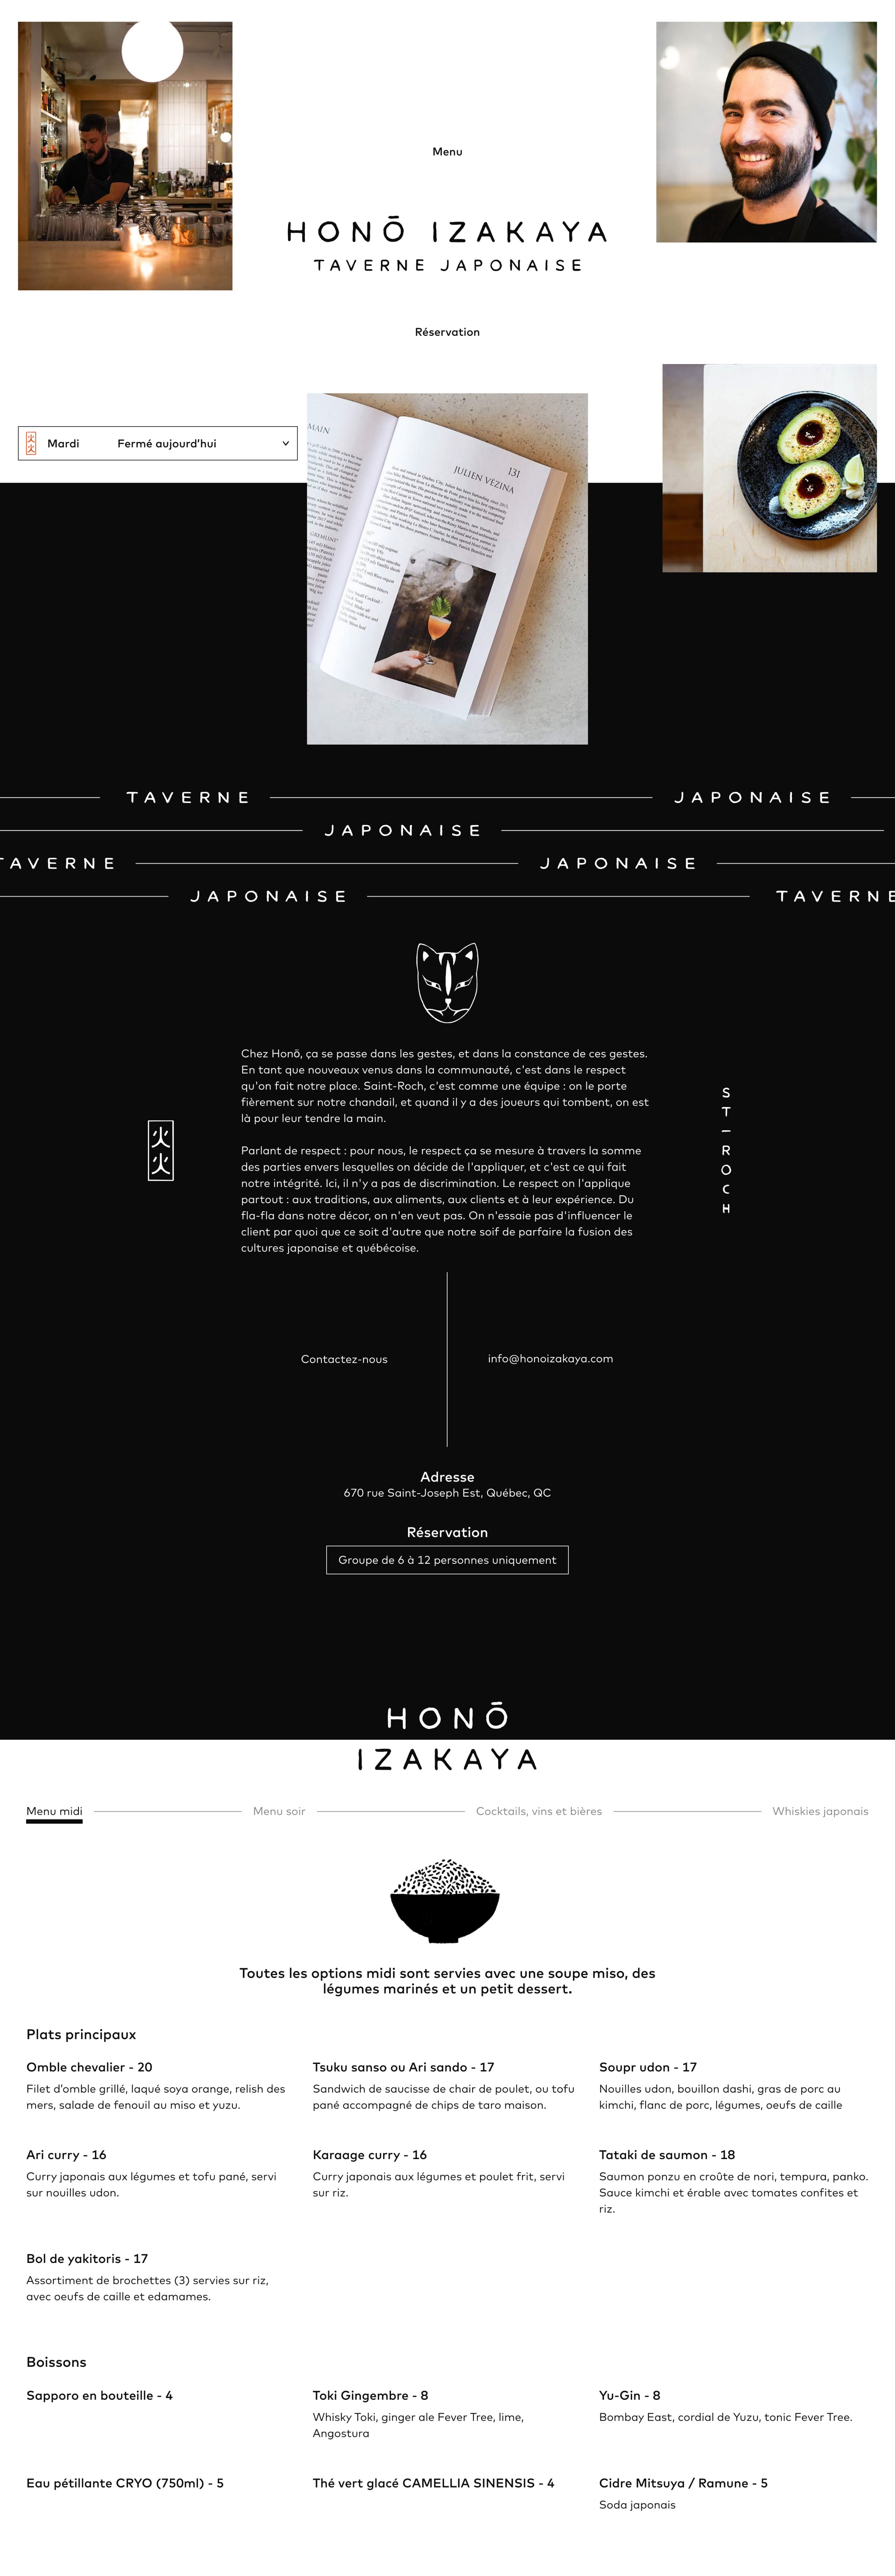 Hono Izakaya Website Screenshot